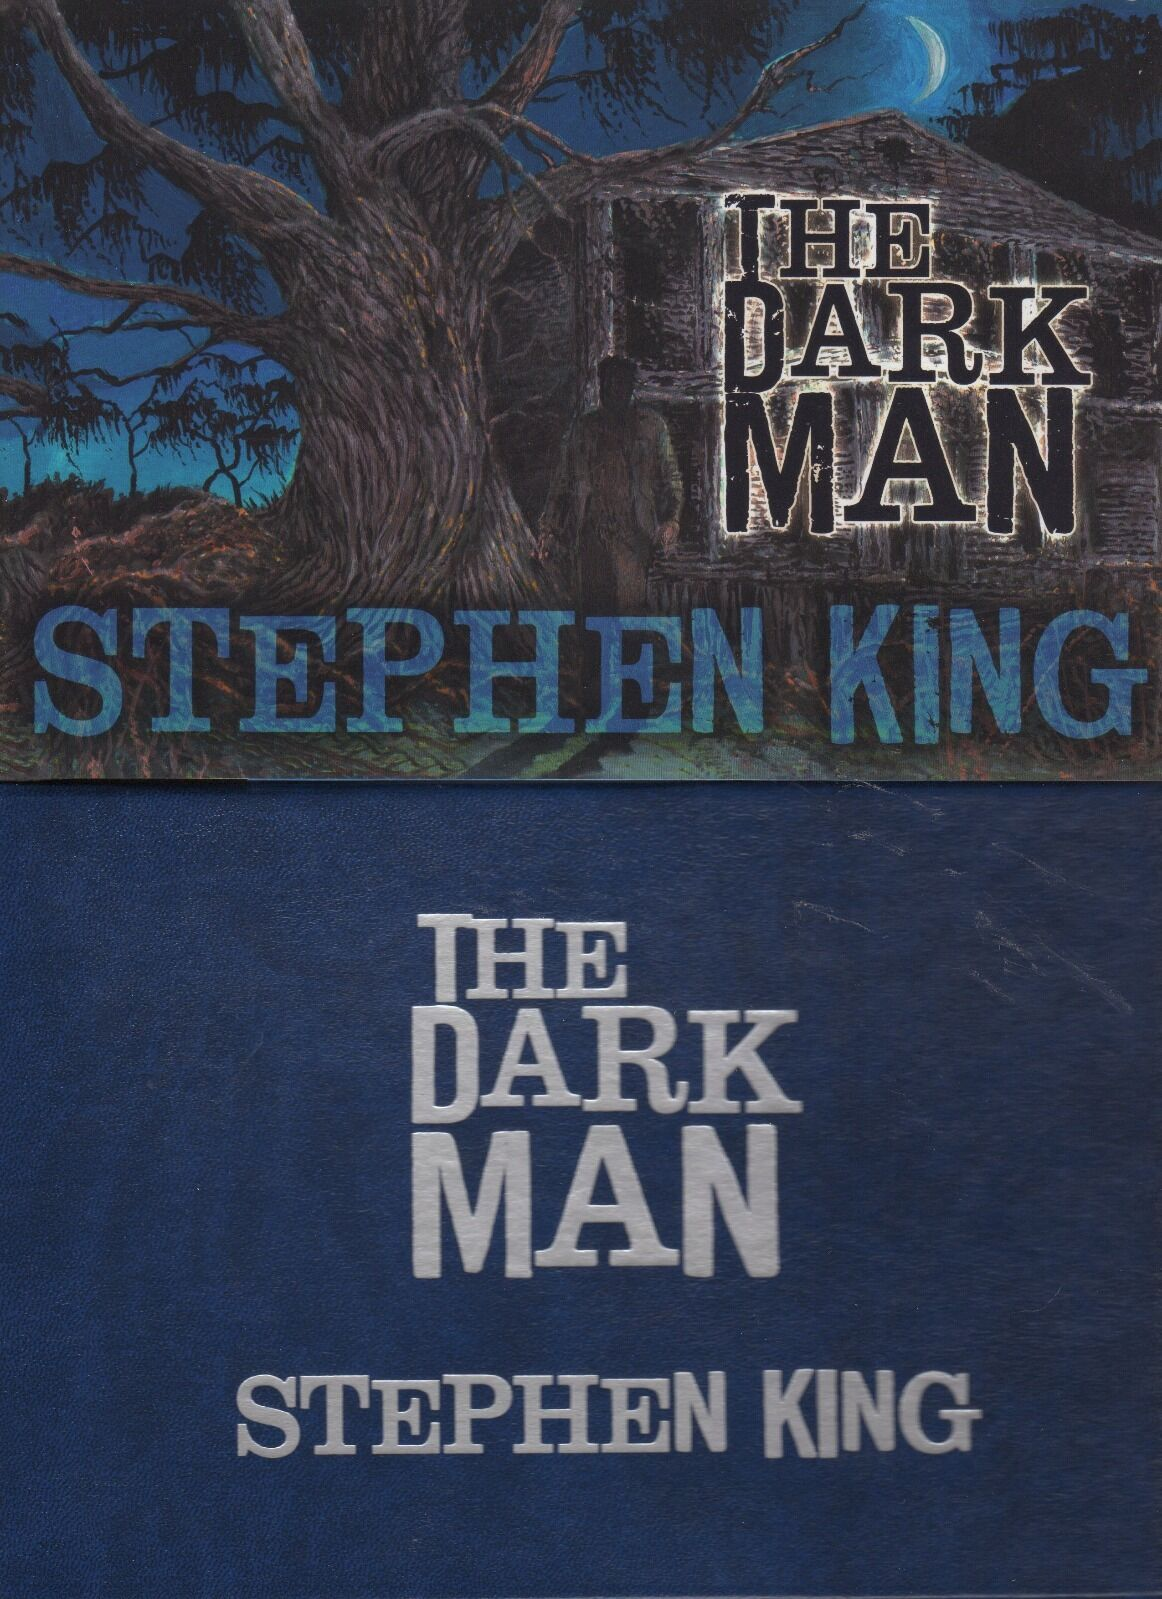 The Dark Man : An Illustrated Poem by Stephen King (2013, Hardcover) |